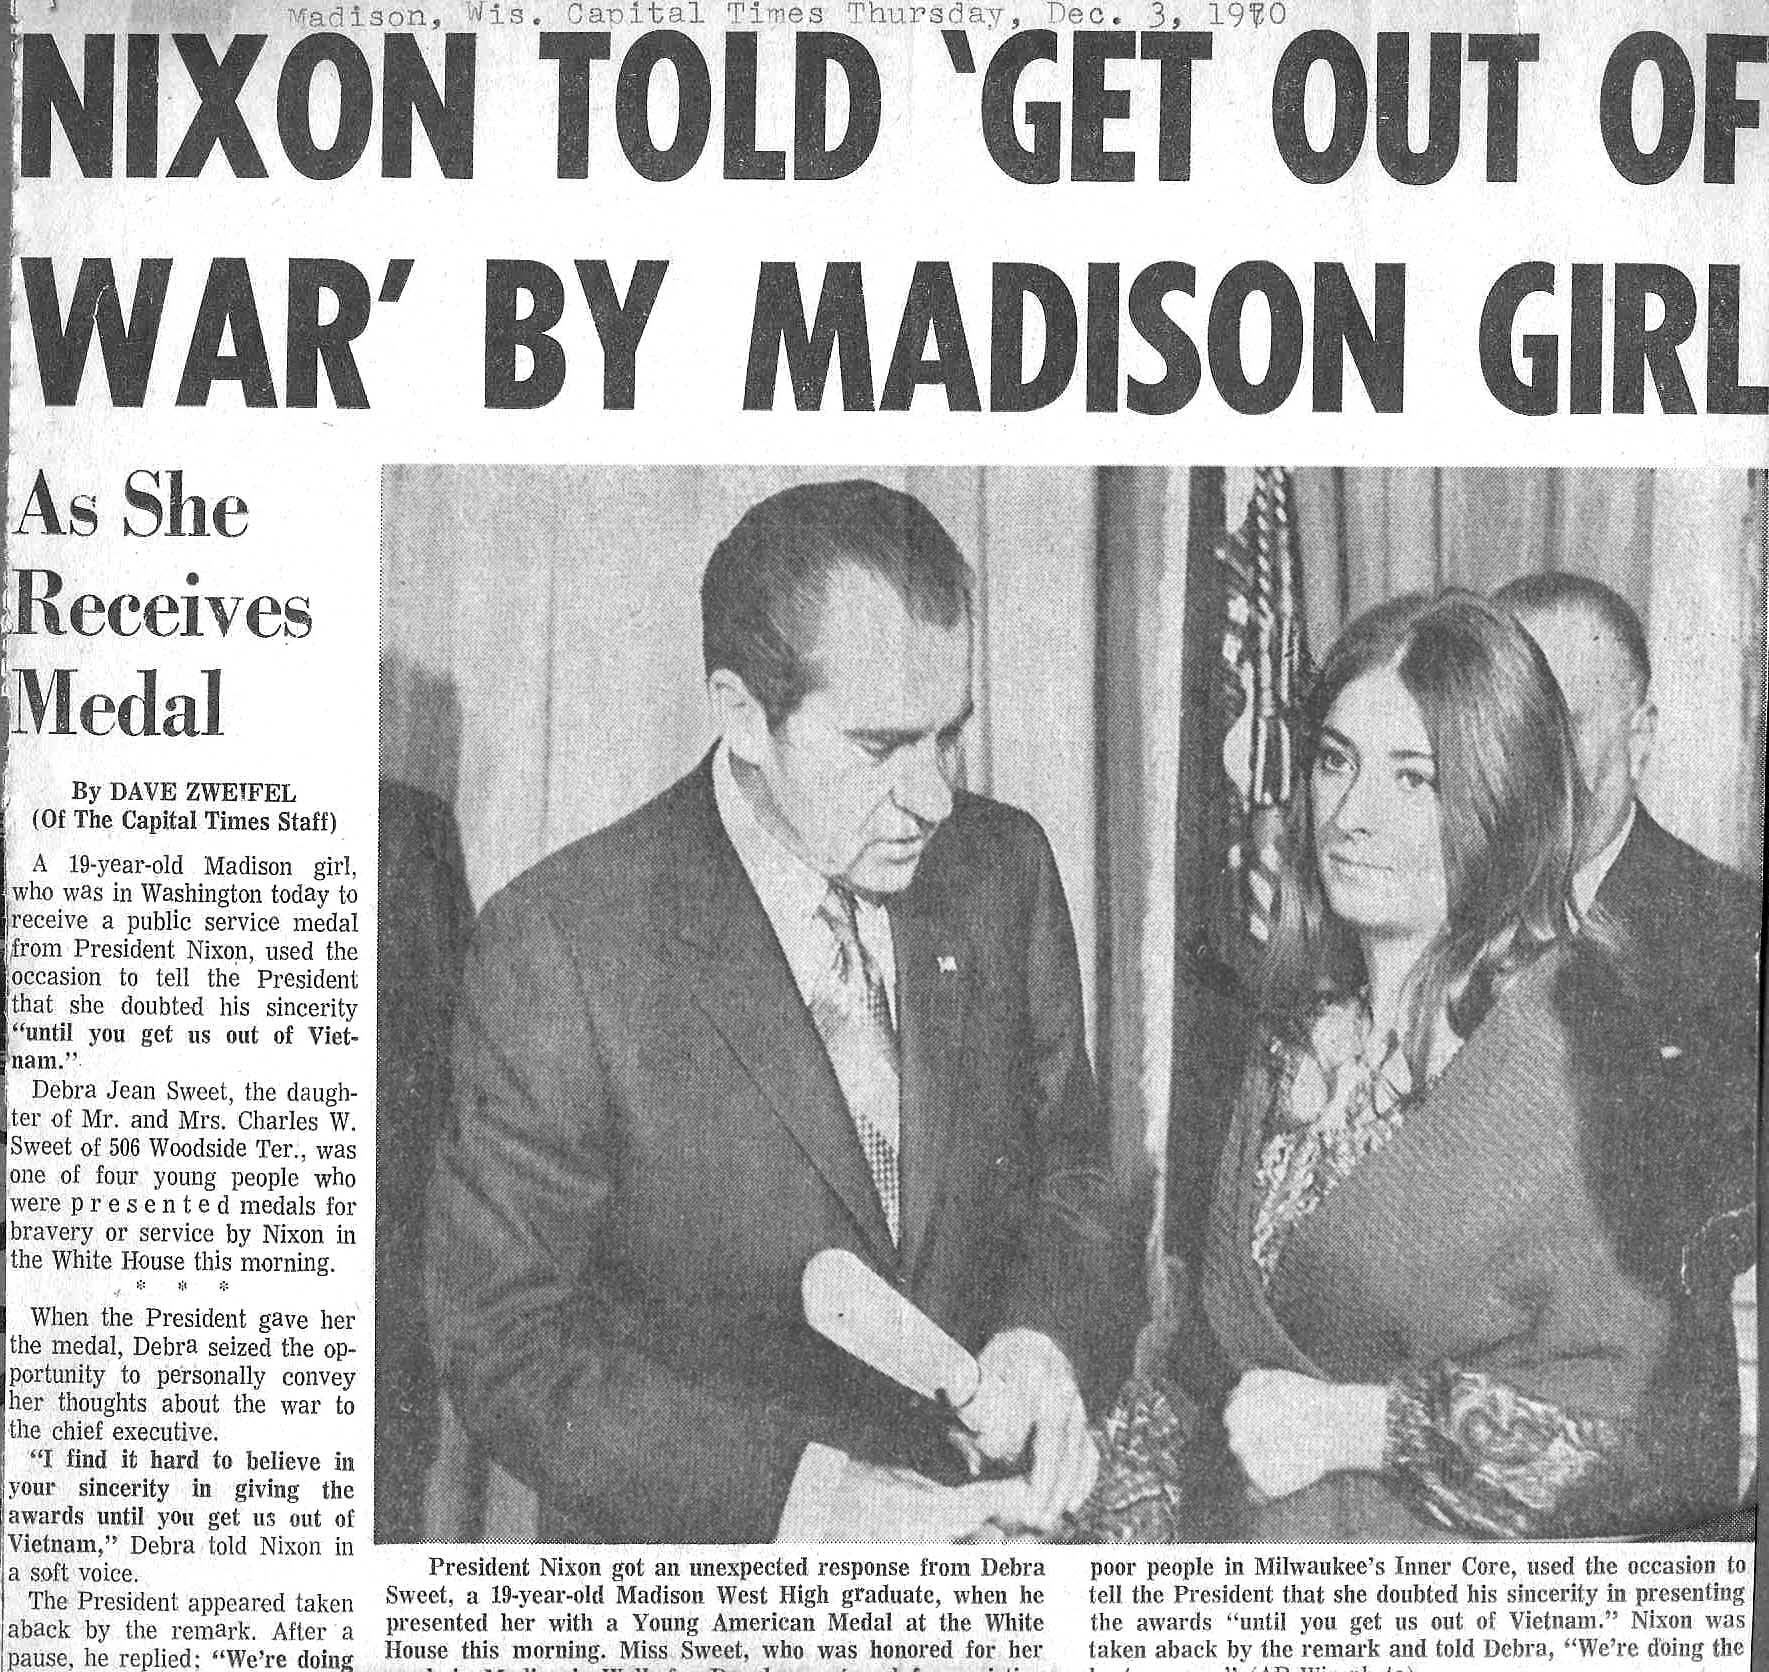 Nixon Told to Get Out of War by Madison Girl